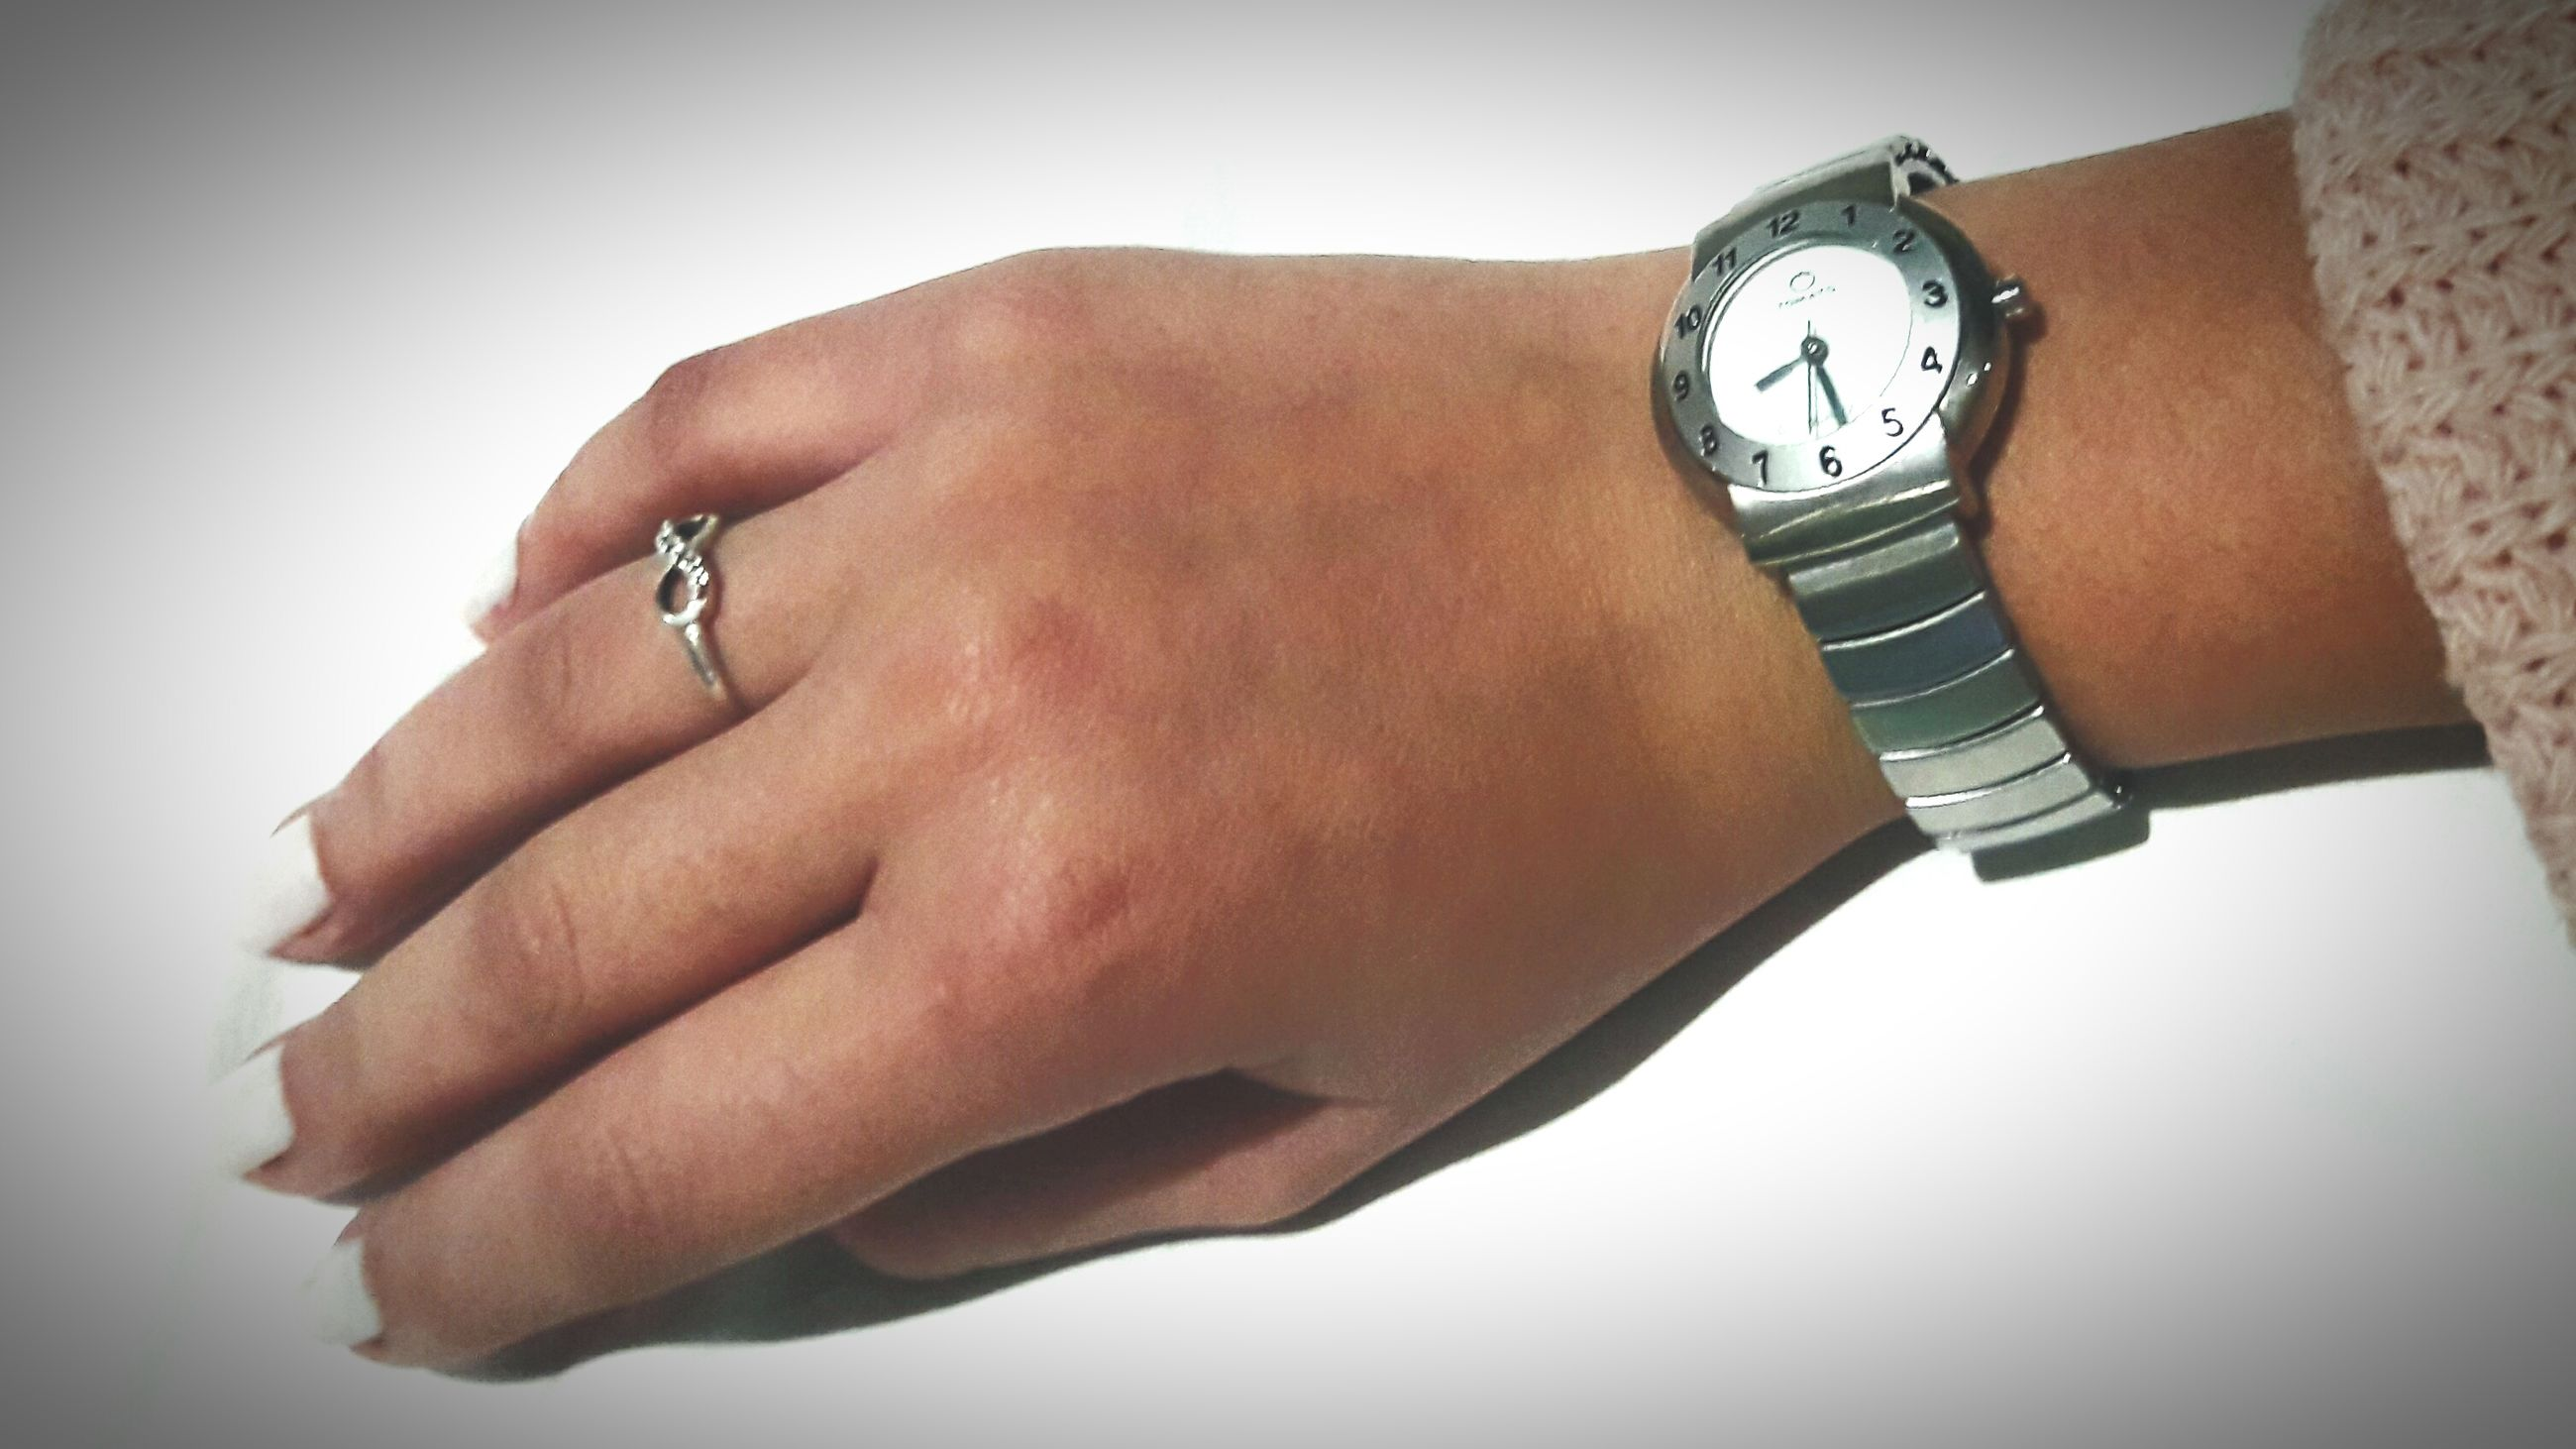 time, human hand, clock, human body part, ring, watch, jewelry, wristwatch, close-up, men, minute hand, one person, studio shot, indoors, real people, white background, clock face, hour hand, day, people